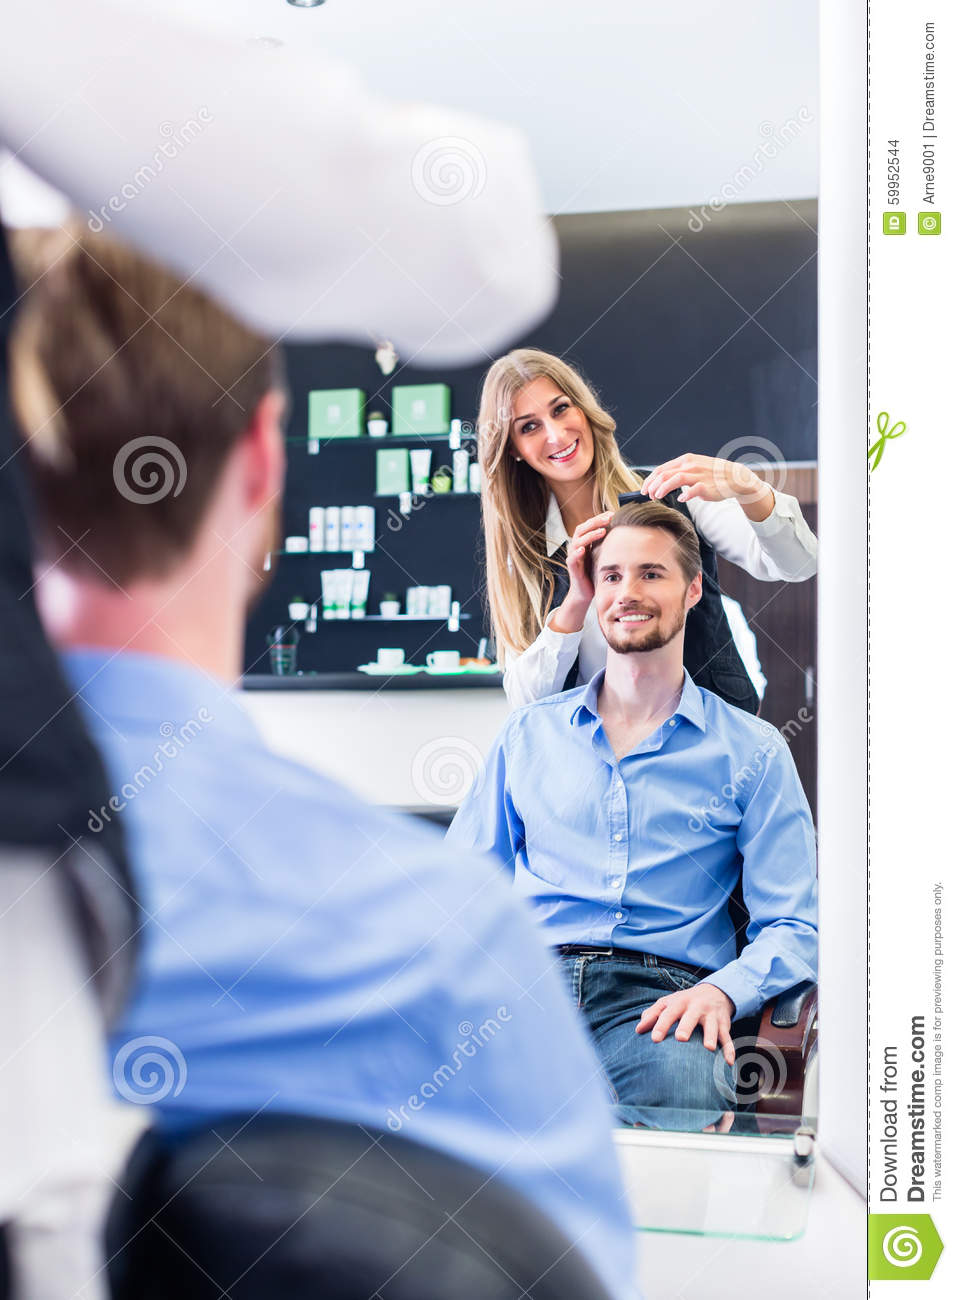 Haircutter Cutting Hair, Shot In Mirror Stock Photo - Image: 59952544